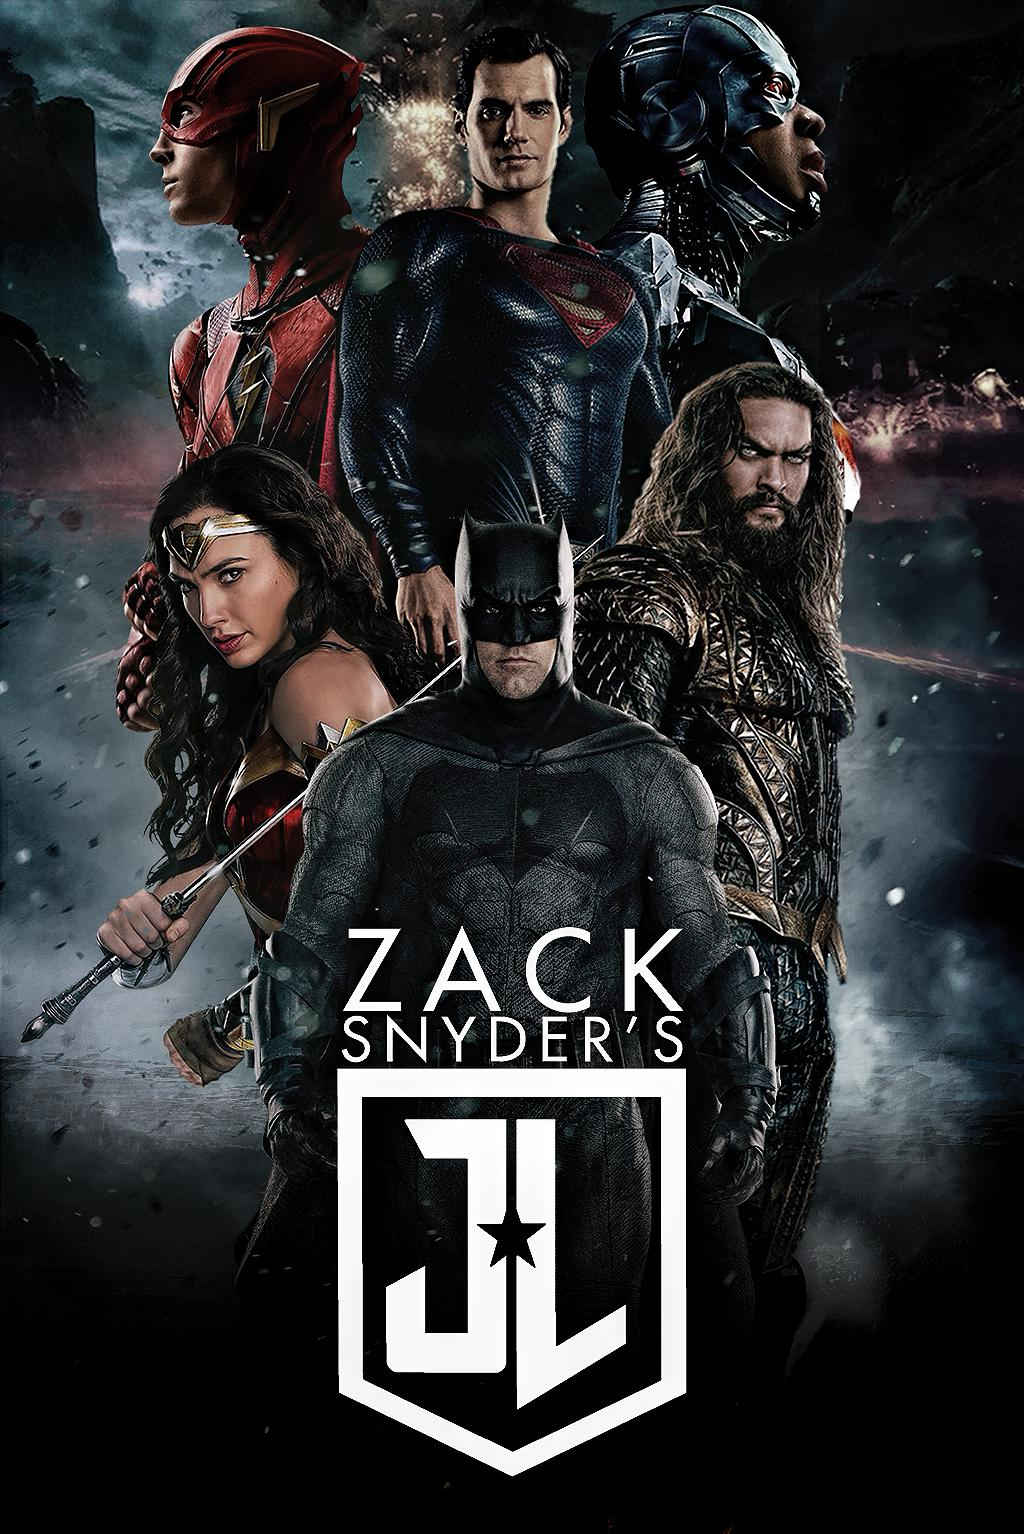 Zack Snyder's Justice League 2021 English Full Movie 480p HDRip ESubs 700MB x264 AAC